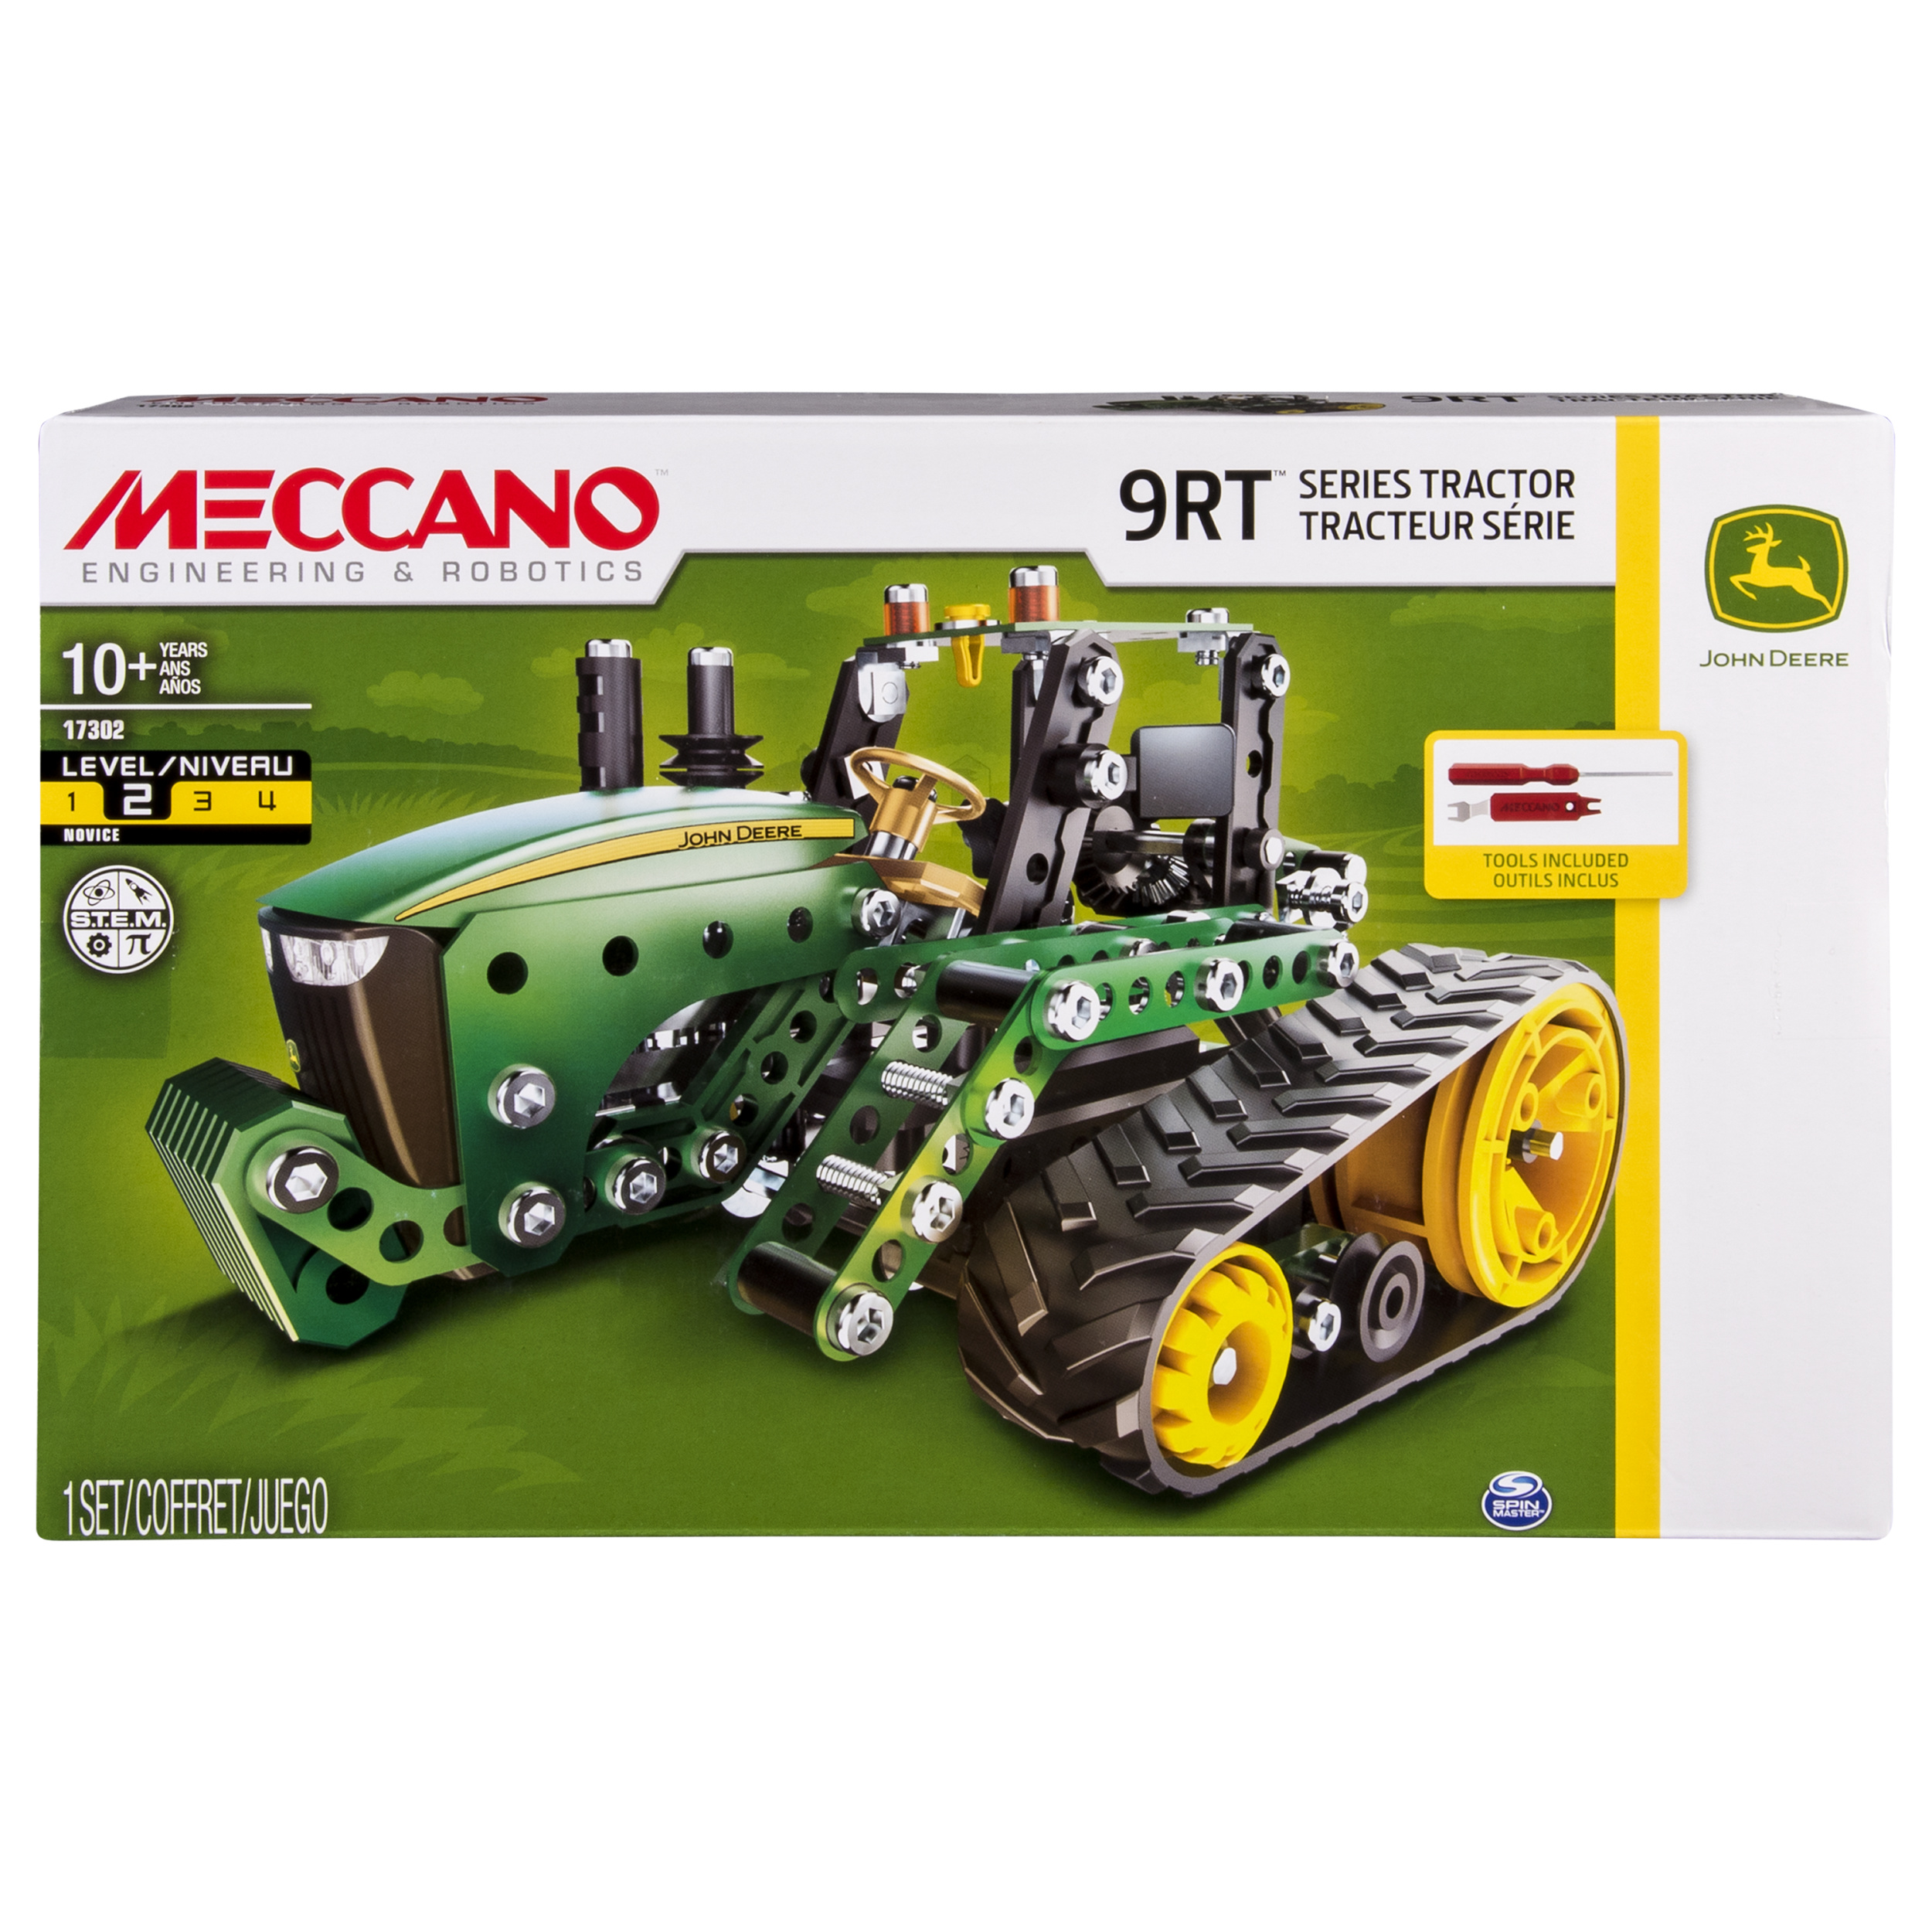 Meccano by Erector John Deere 9RT Series Tractor Building Set by Spin Master Ltd